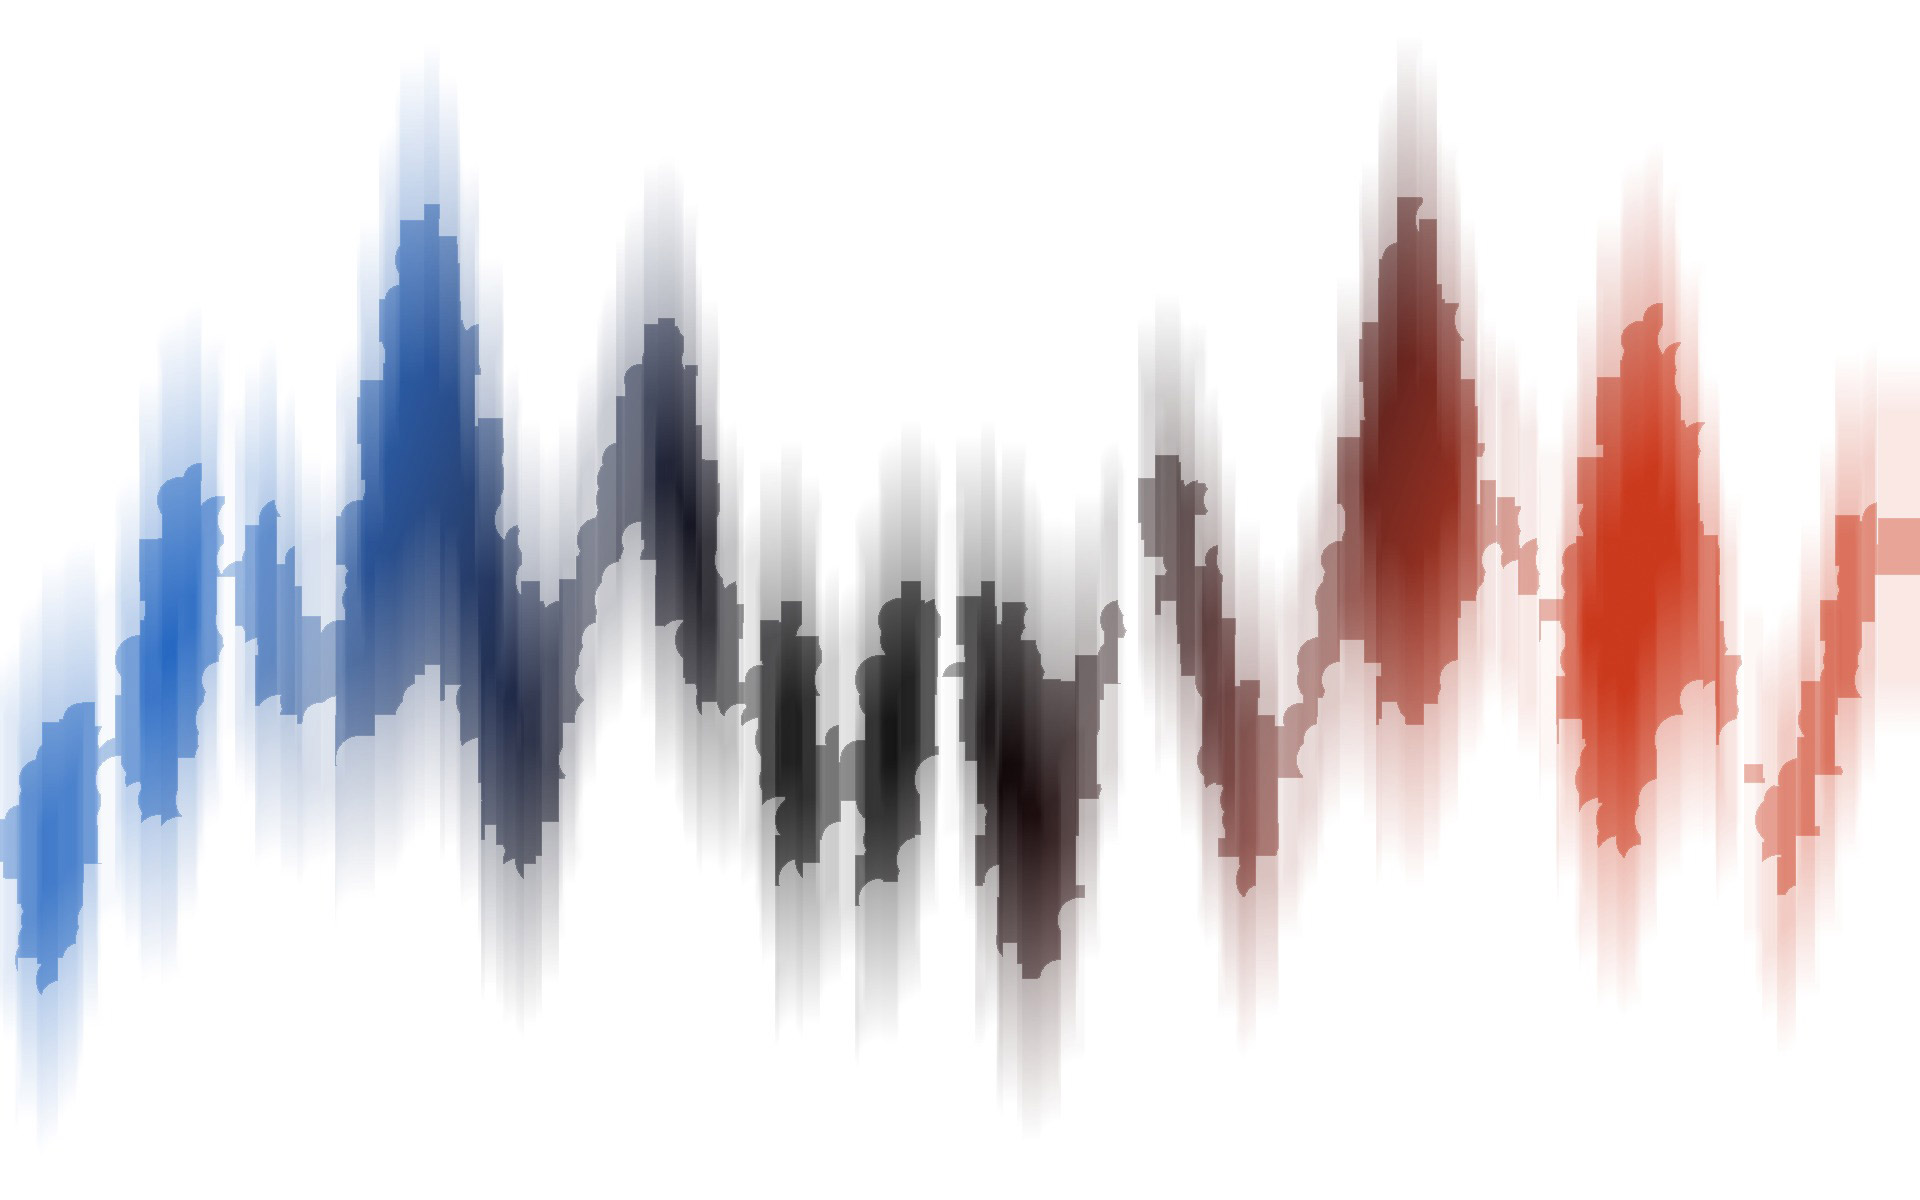 abstract sound wave wallpaper 47333 1920x1200 px ~ hdwallsource